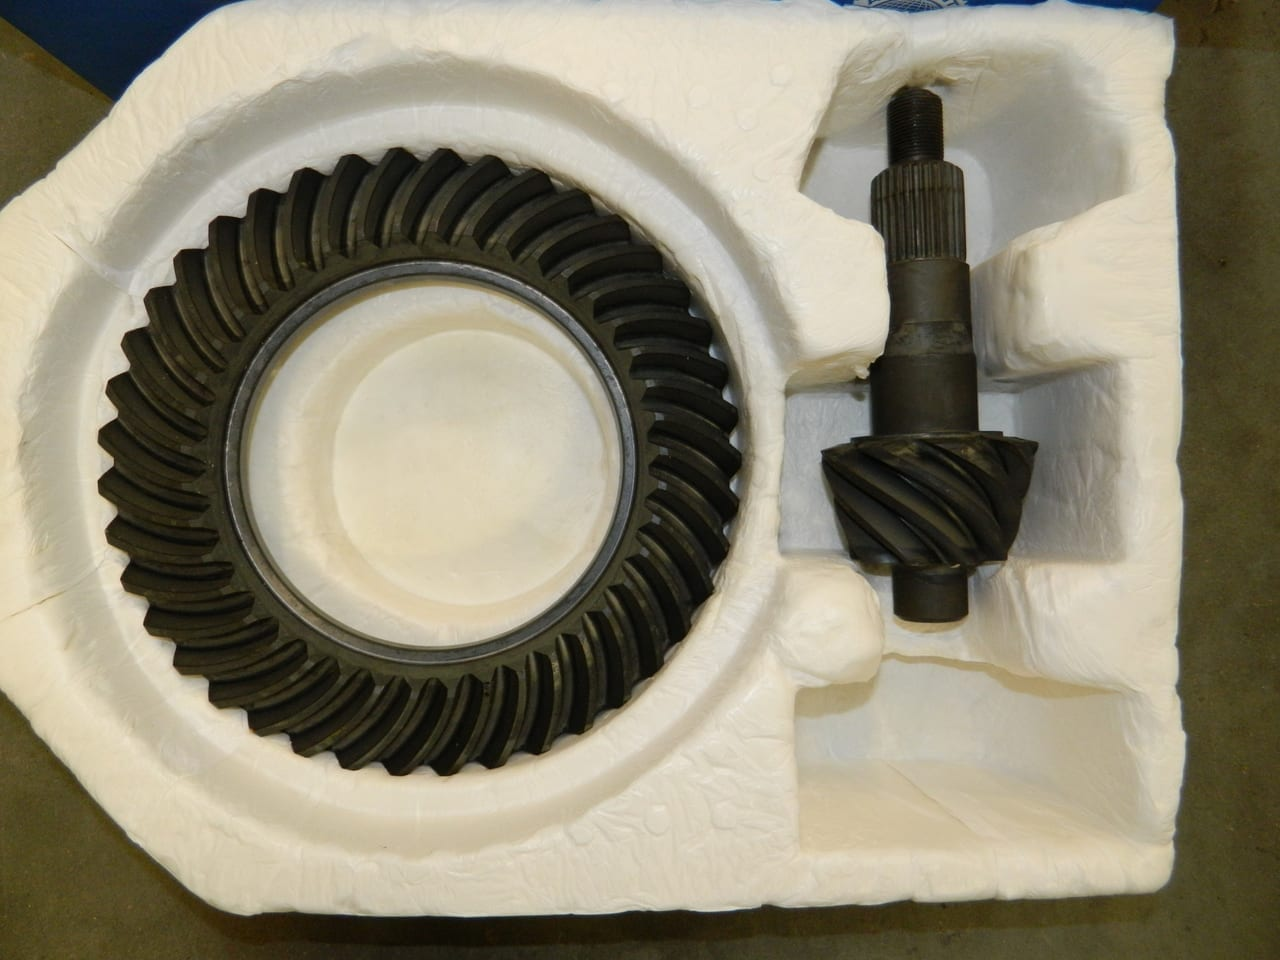 GM 14 Bolt 10.5 Ring & Pinion Gear Set 4:56 AAM OEM Chevy GM14T-456